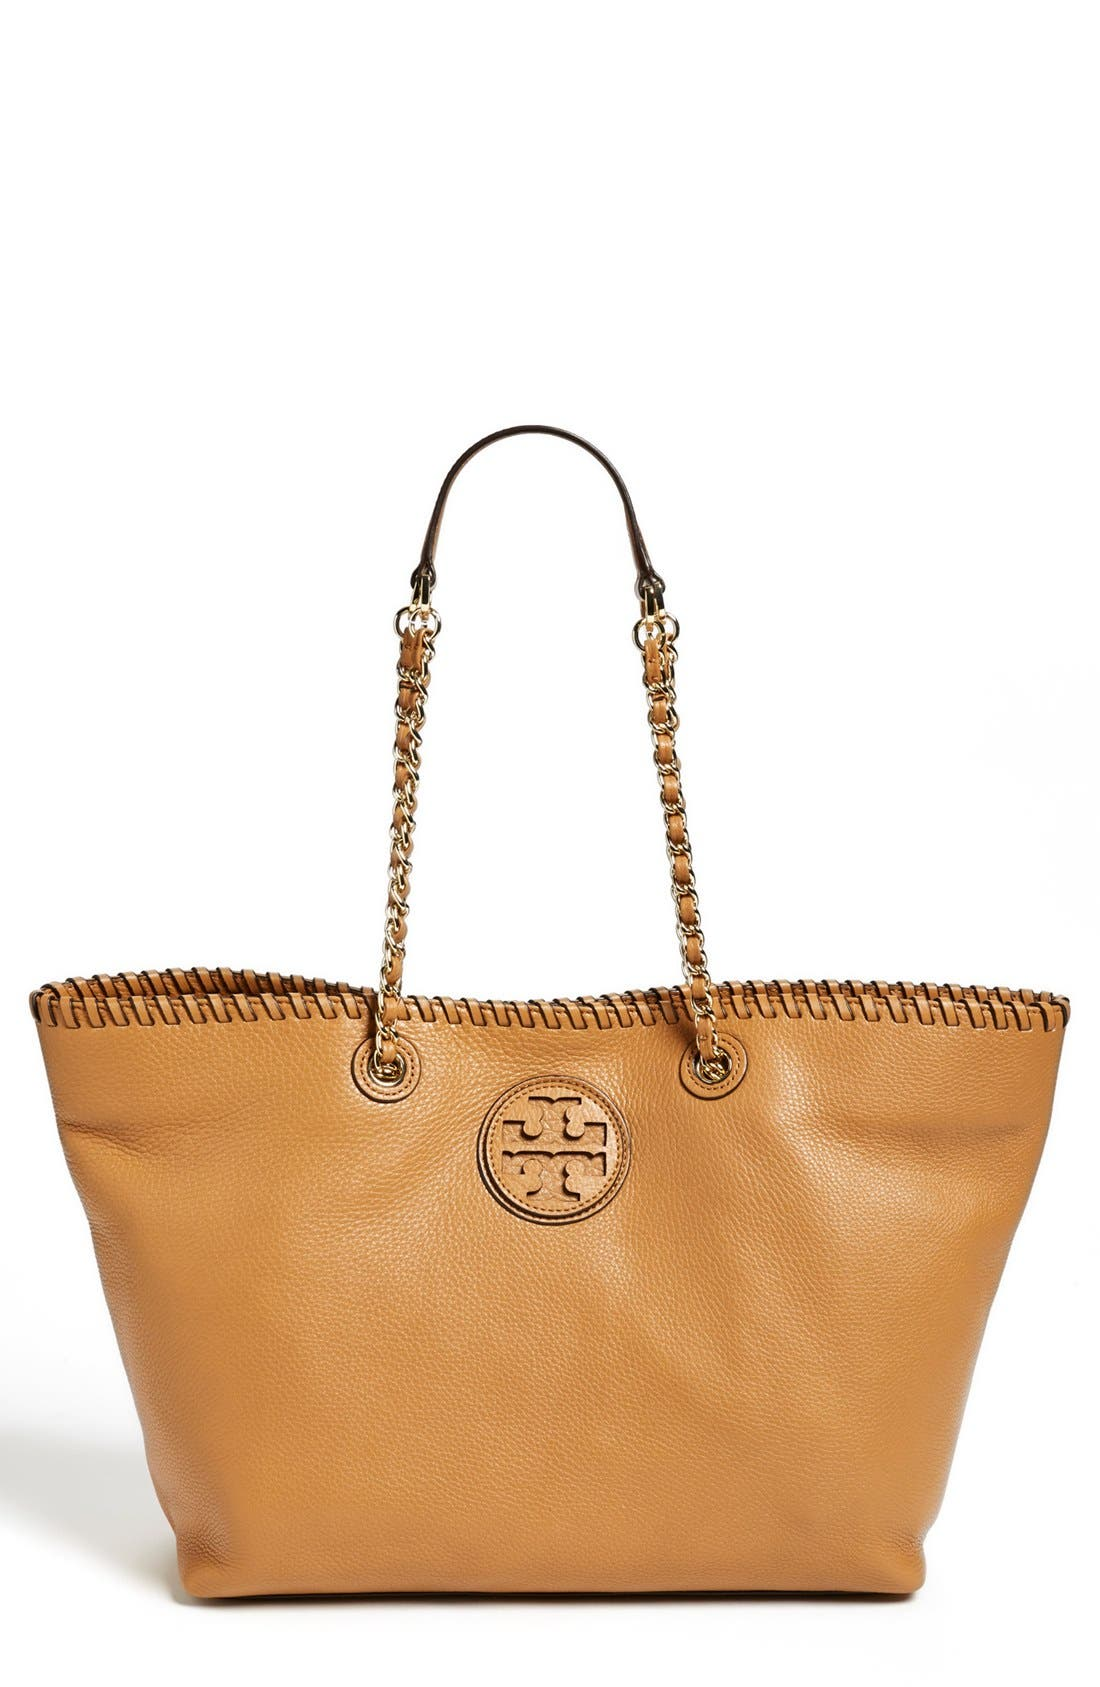 Main Image - Tory Burch 'Small Marion' Tote